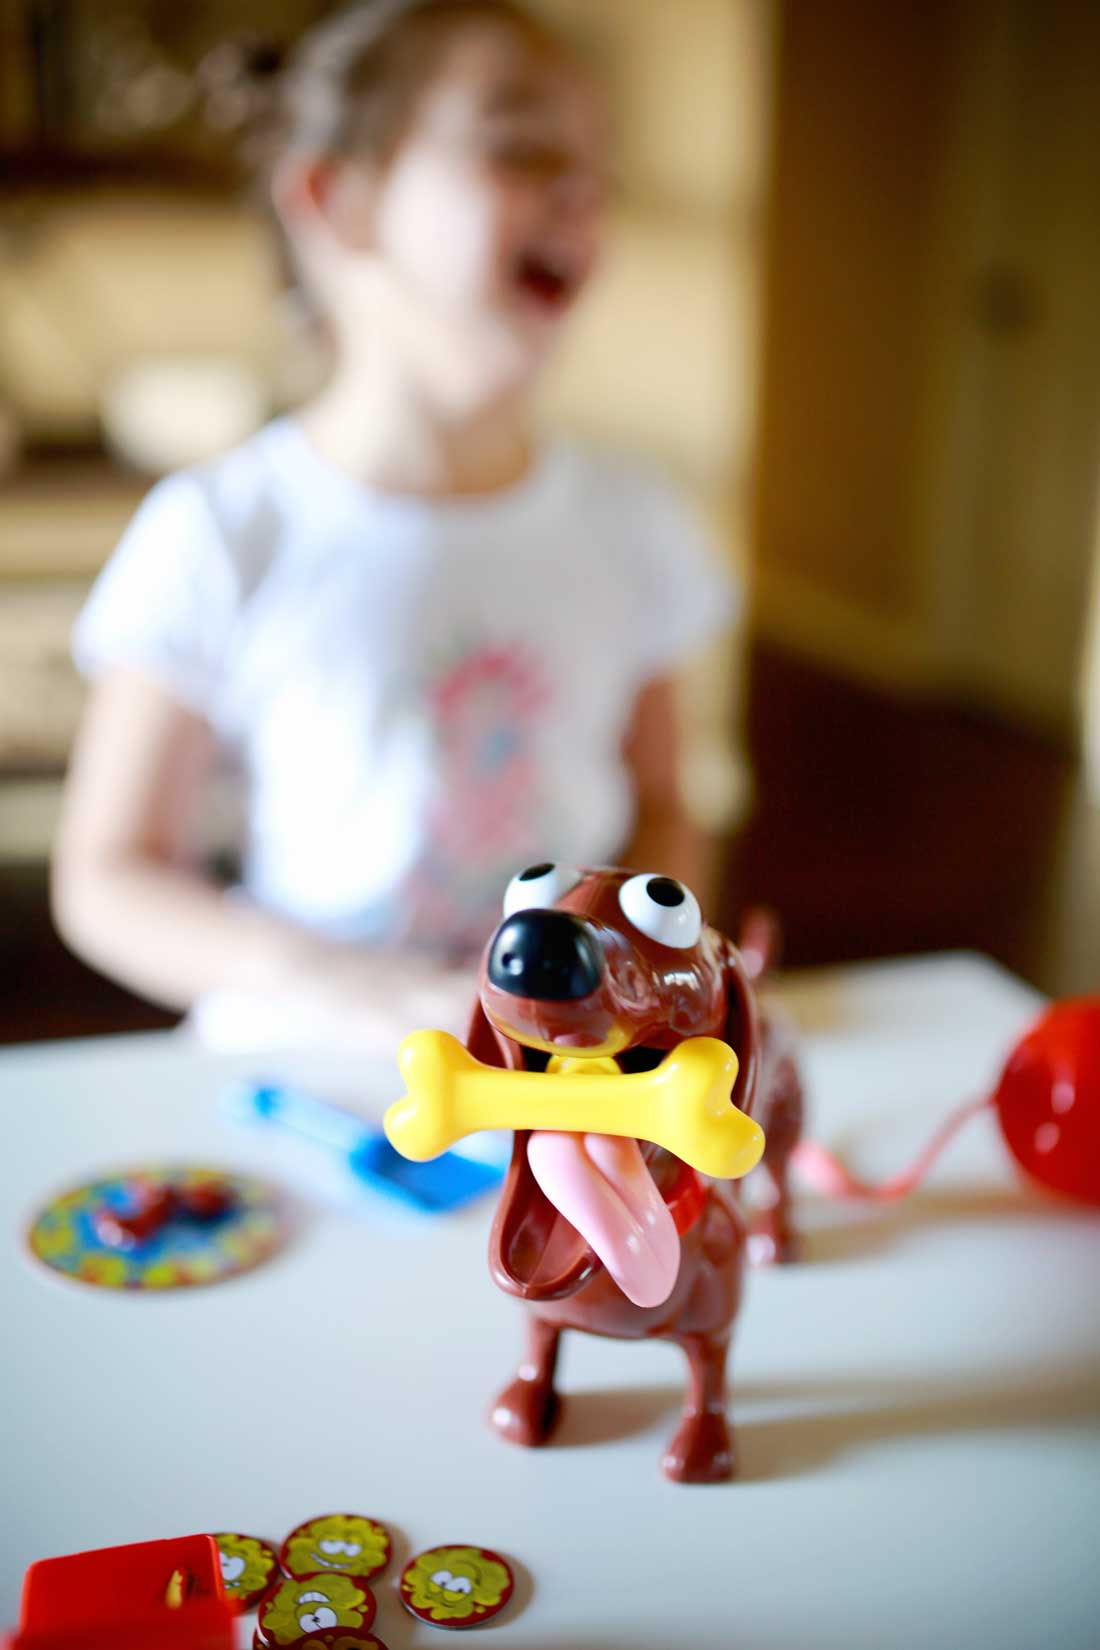 Doggie Doo by Goliath Games. Super fun kids game!